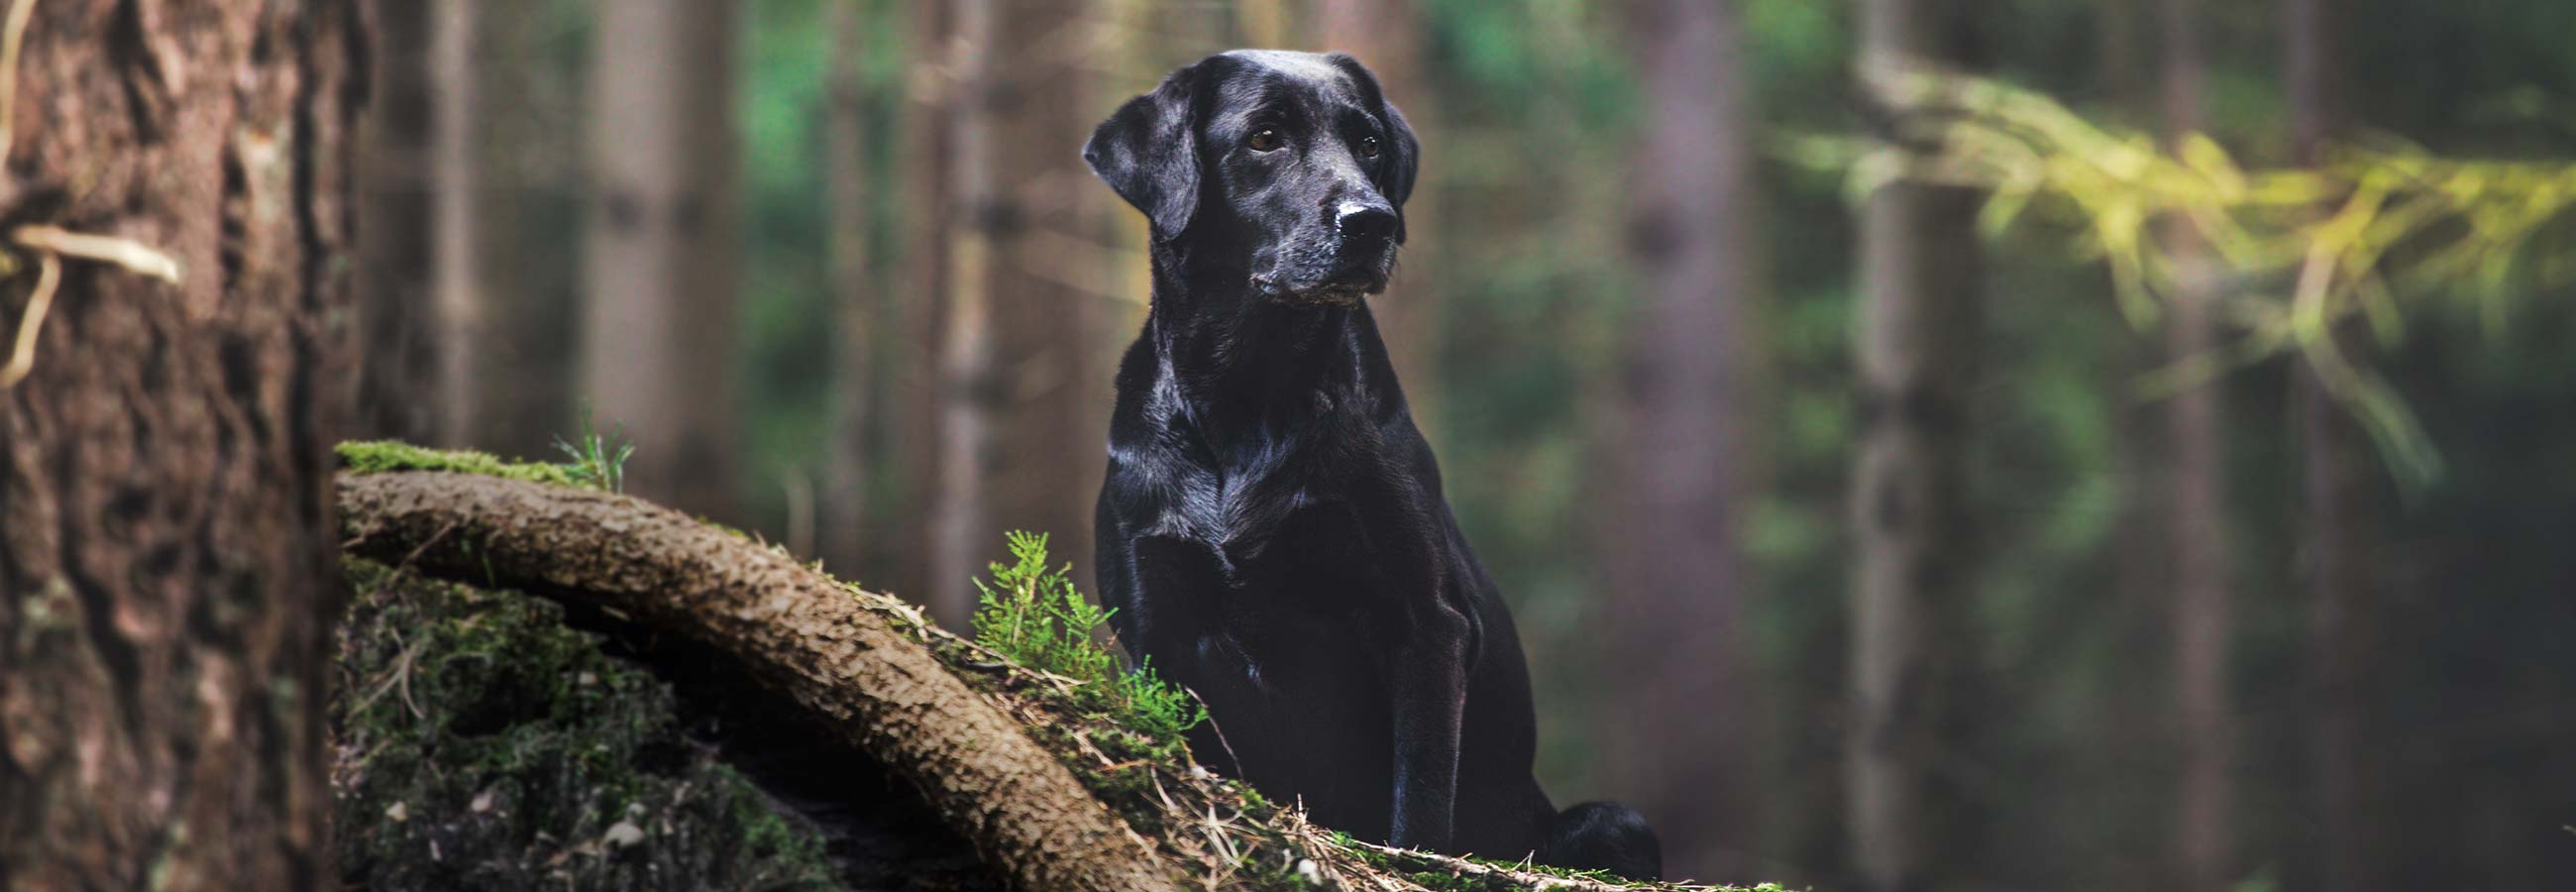 black lab sitting in forest